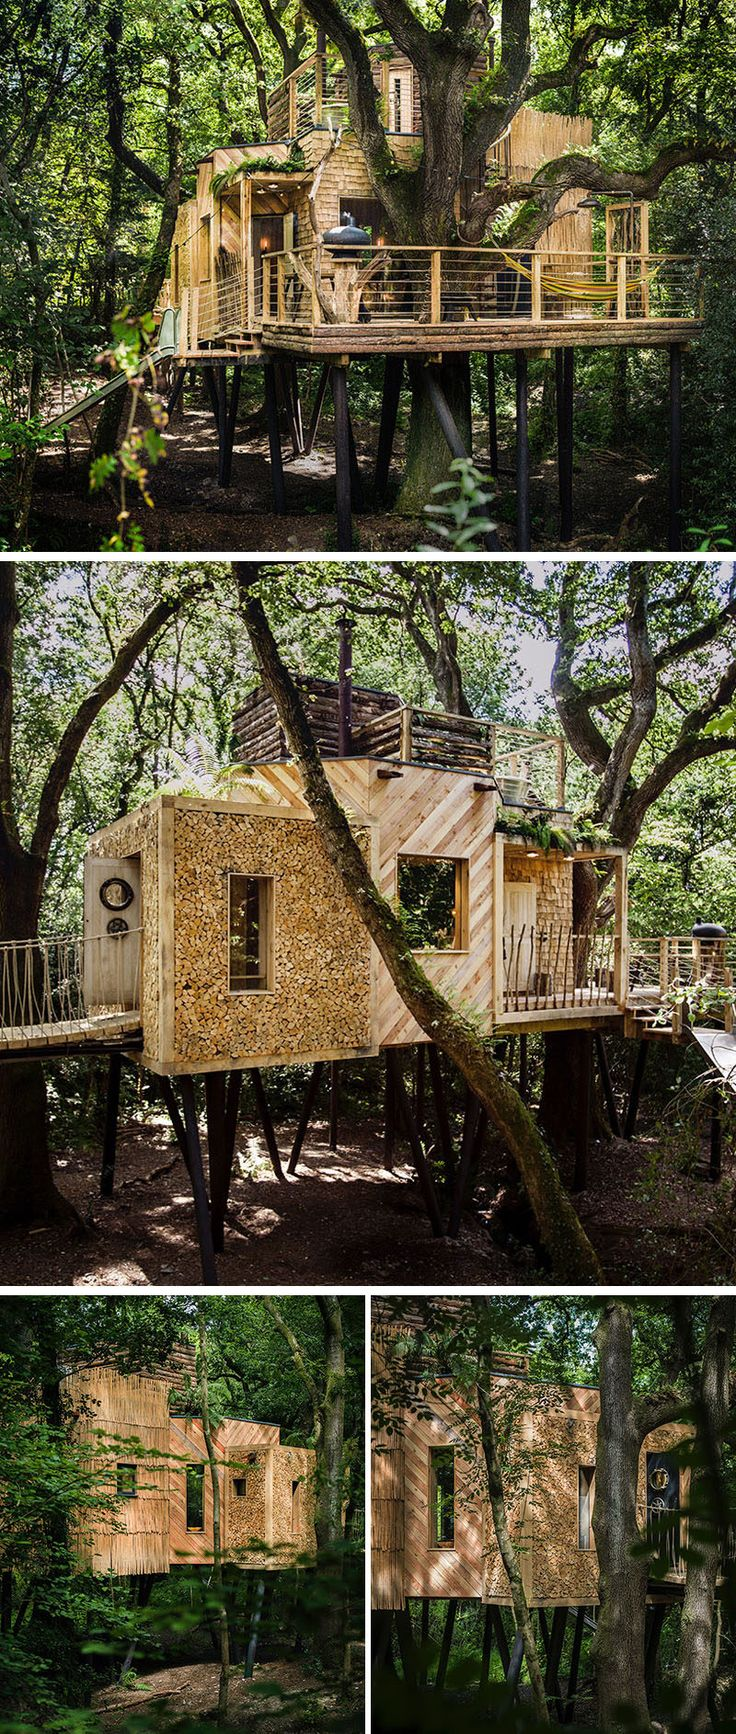 Best Treehouse Images On Pinterest Treehouse Treehouses And - Group guys build epic treehouse gaming